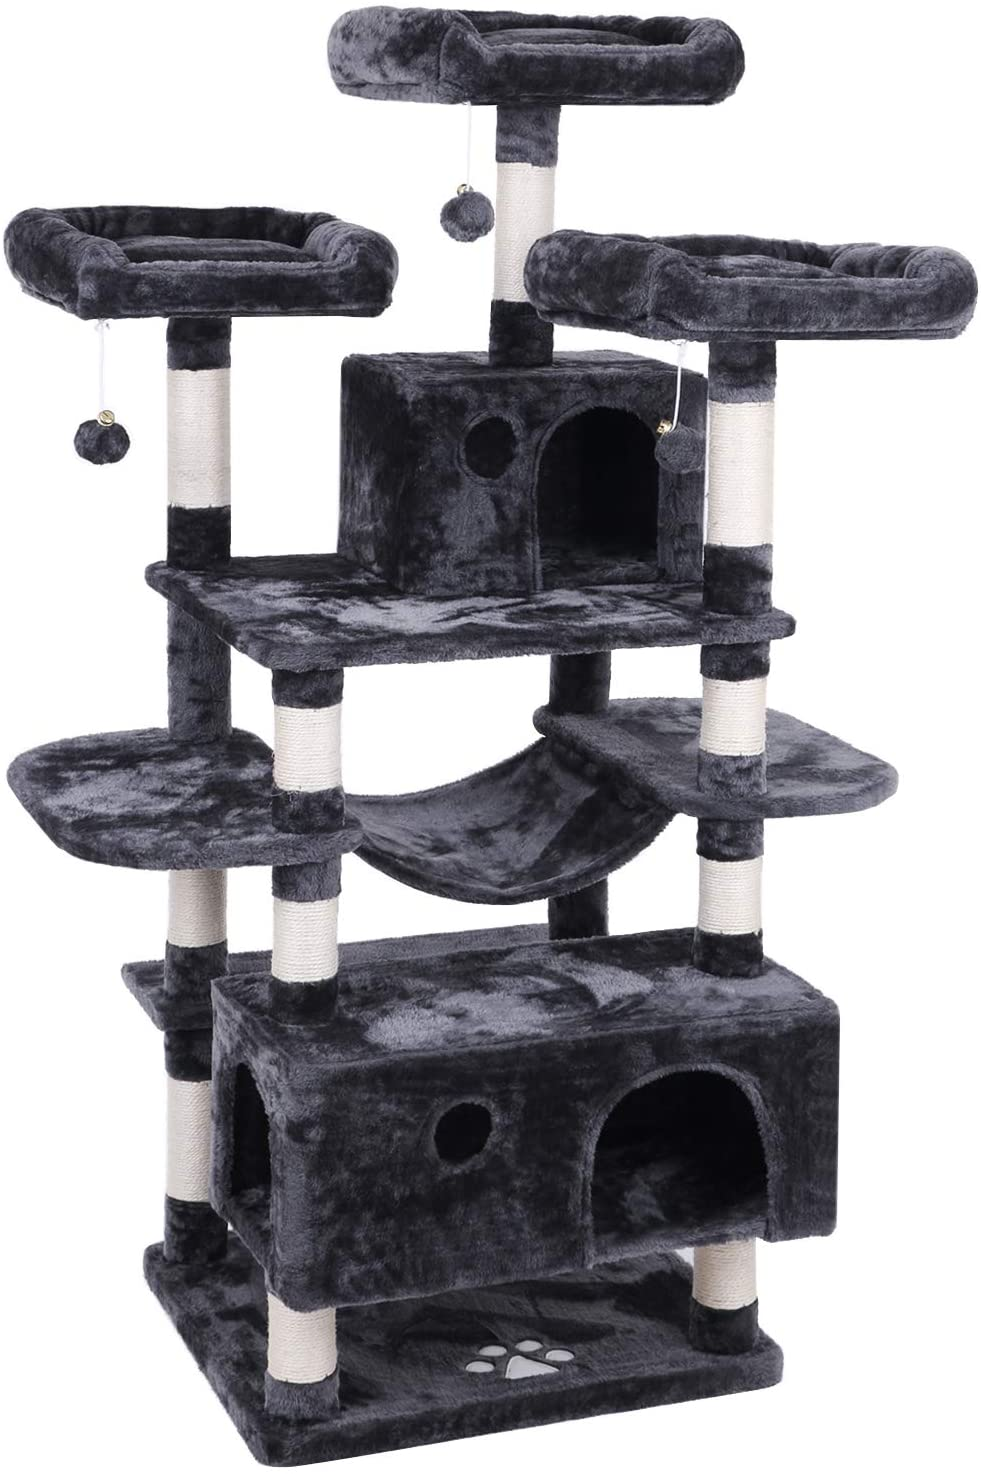 8. BEWISHOME MMJ03 Large Cat Tree Condo